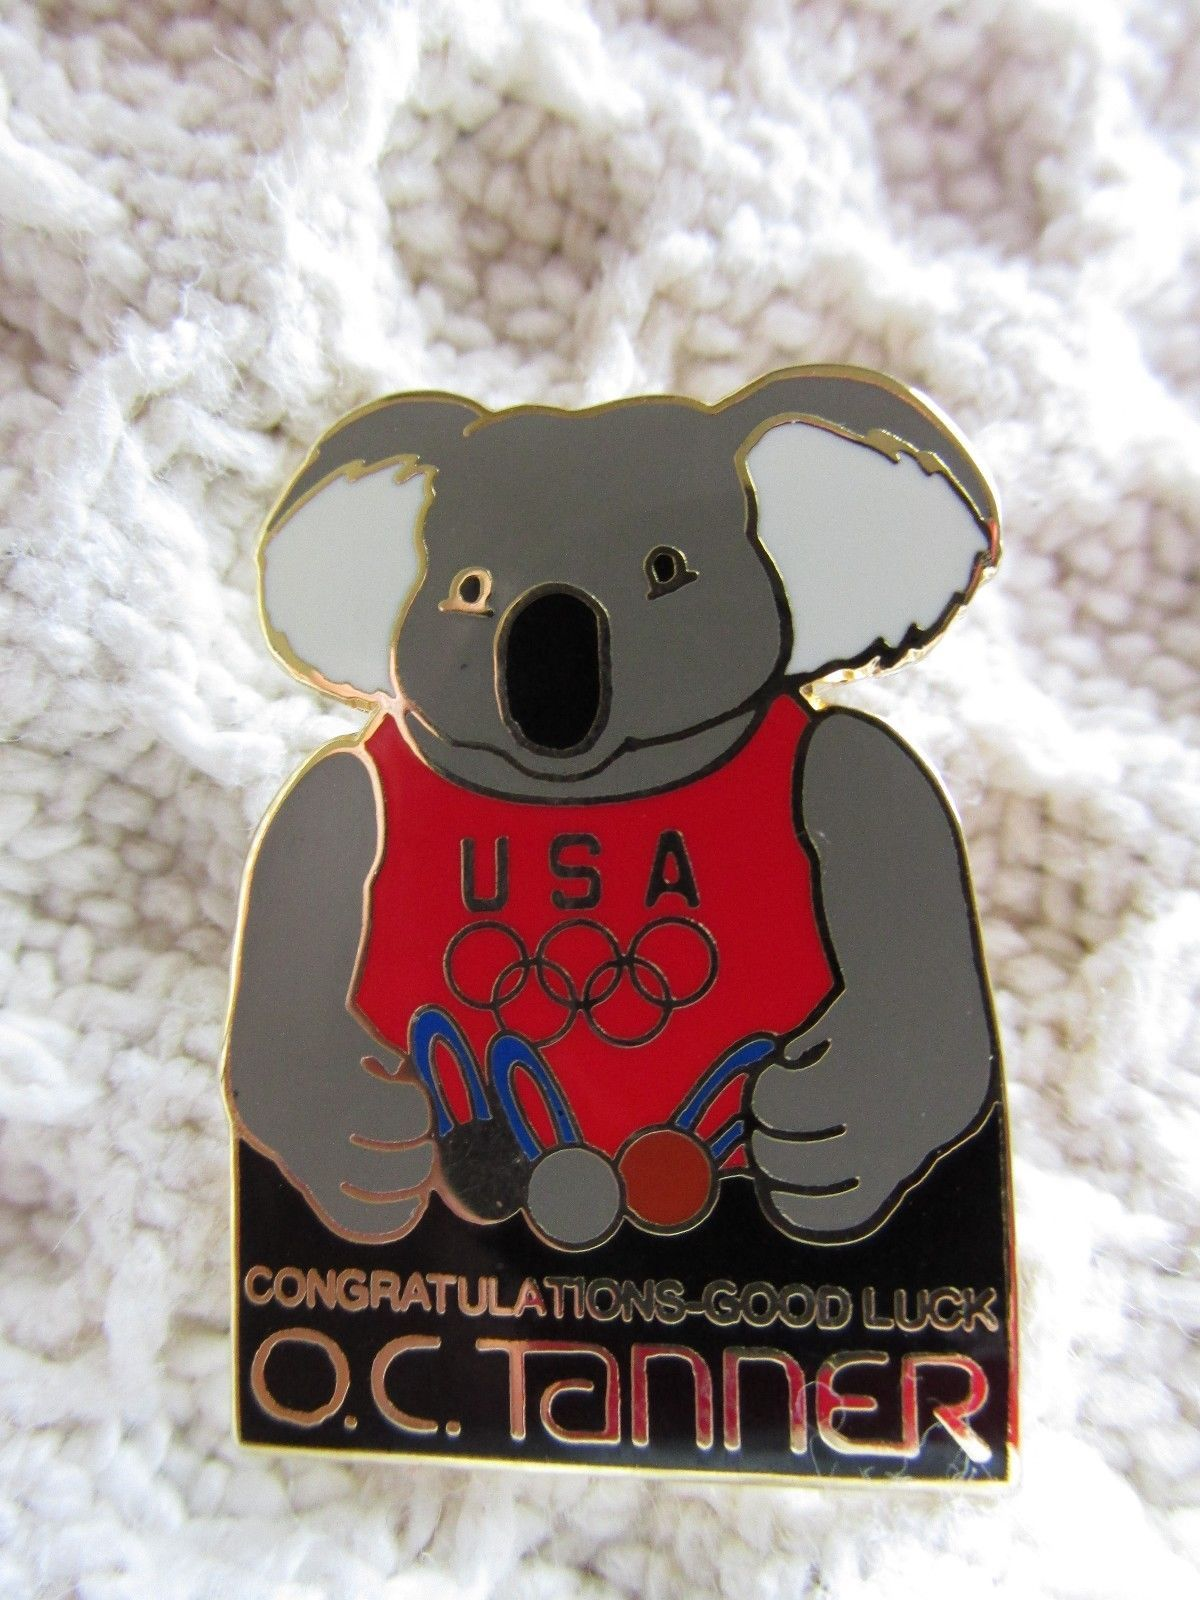 OC Tanner Koala Bear Bridge Pin 2002 Salt Lake Olympics Sponsor Lapel Pin